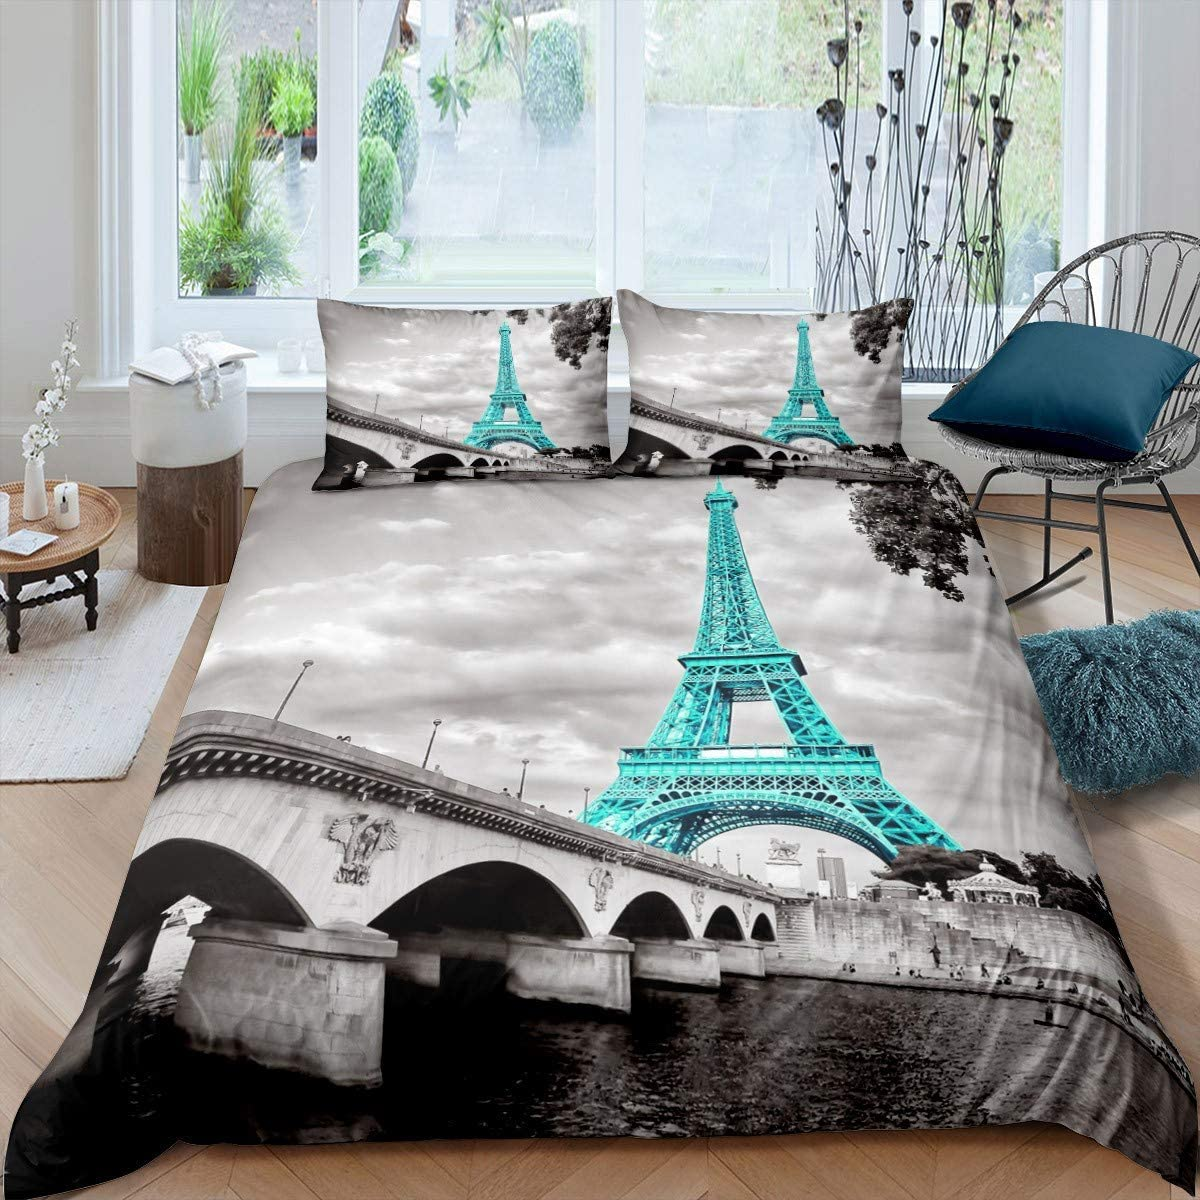 Eiffel Tower Duvet Cover Set Girls Chic Teal Paris Theme Bedding Set for Kids Teens Women Bedroom Decor Paris Cityscape Printed Comforter Cover Microfiber Modern French Style Bedspread Cover Twin